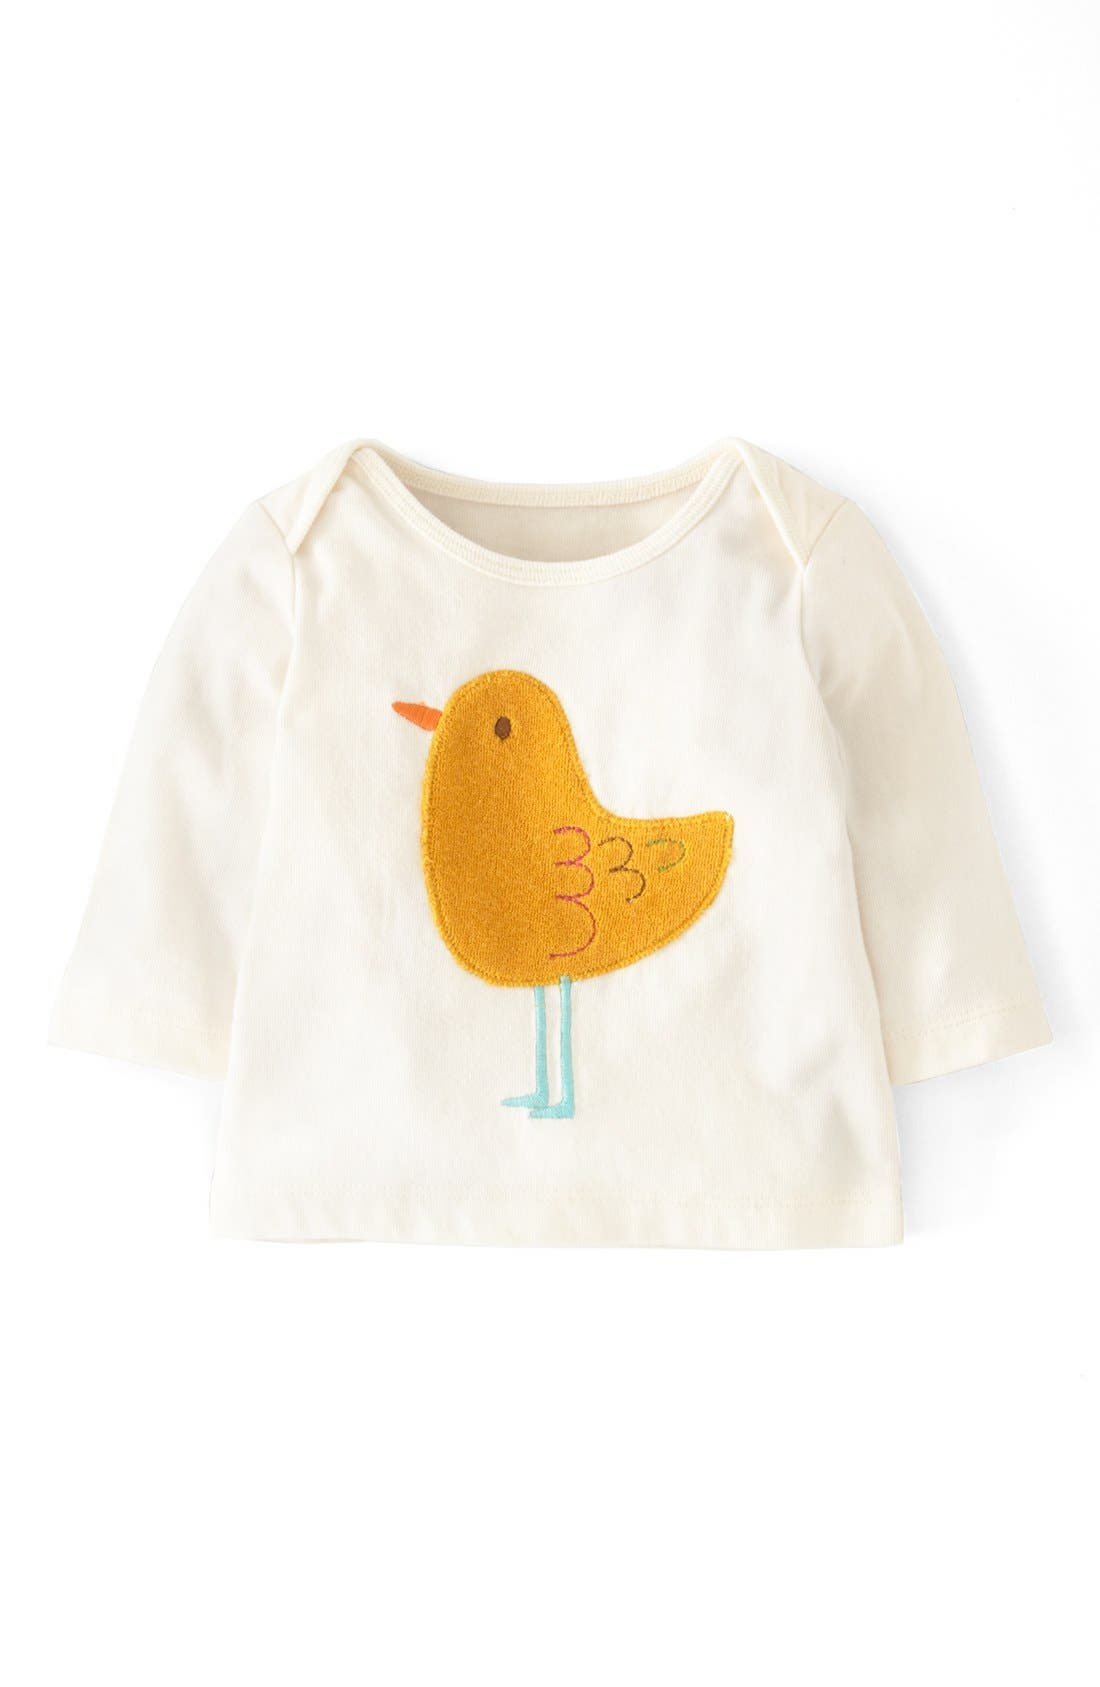 Alternate Image 1 Selected - Mini Boden 'Sweet Appliqué' Tee (Baby Girls)